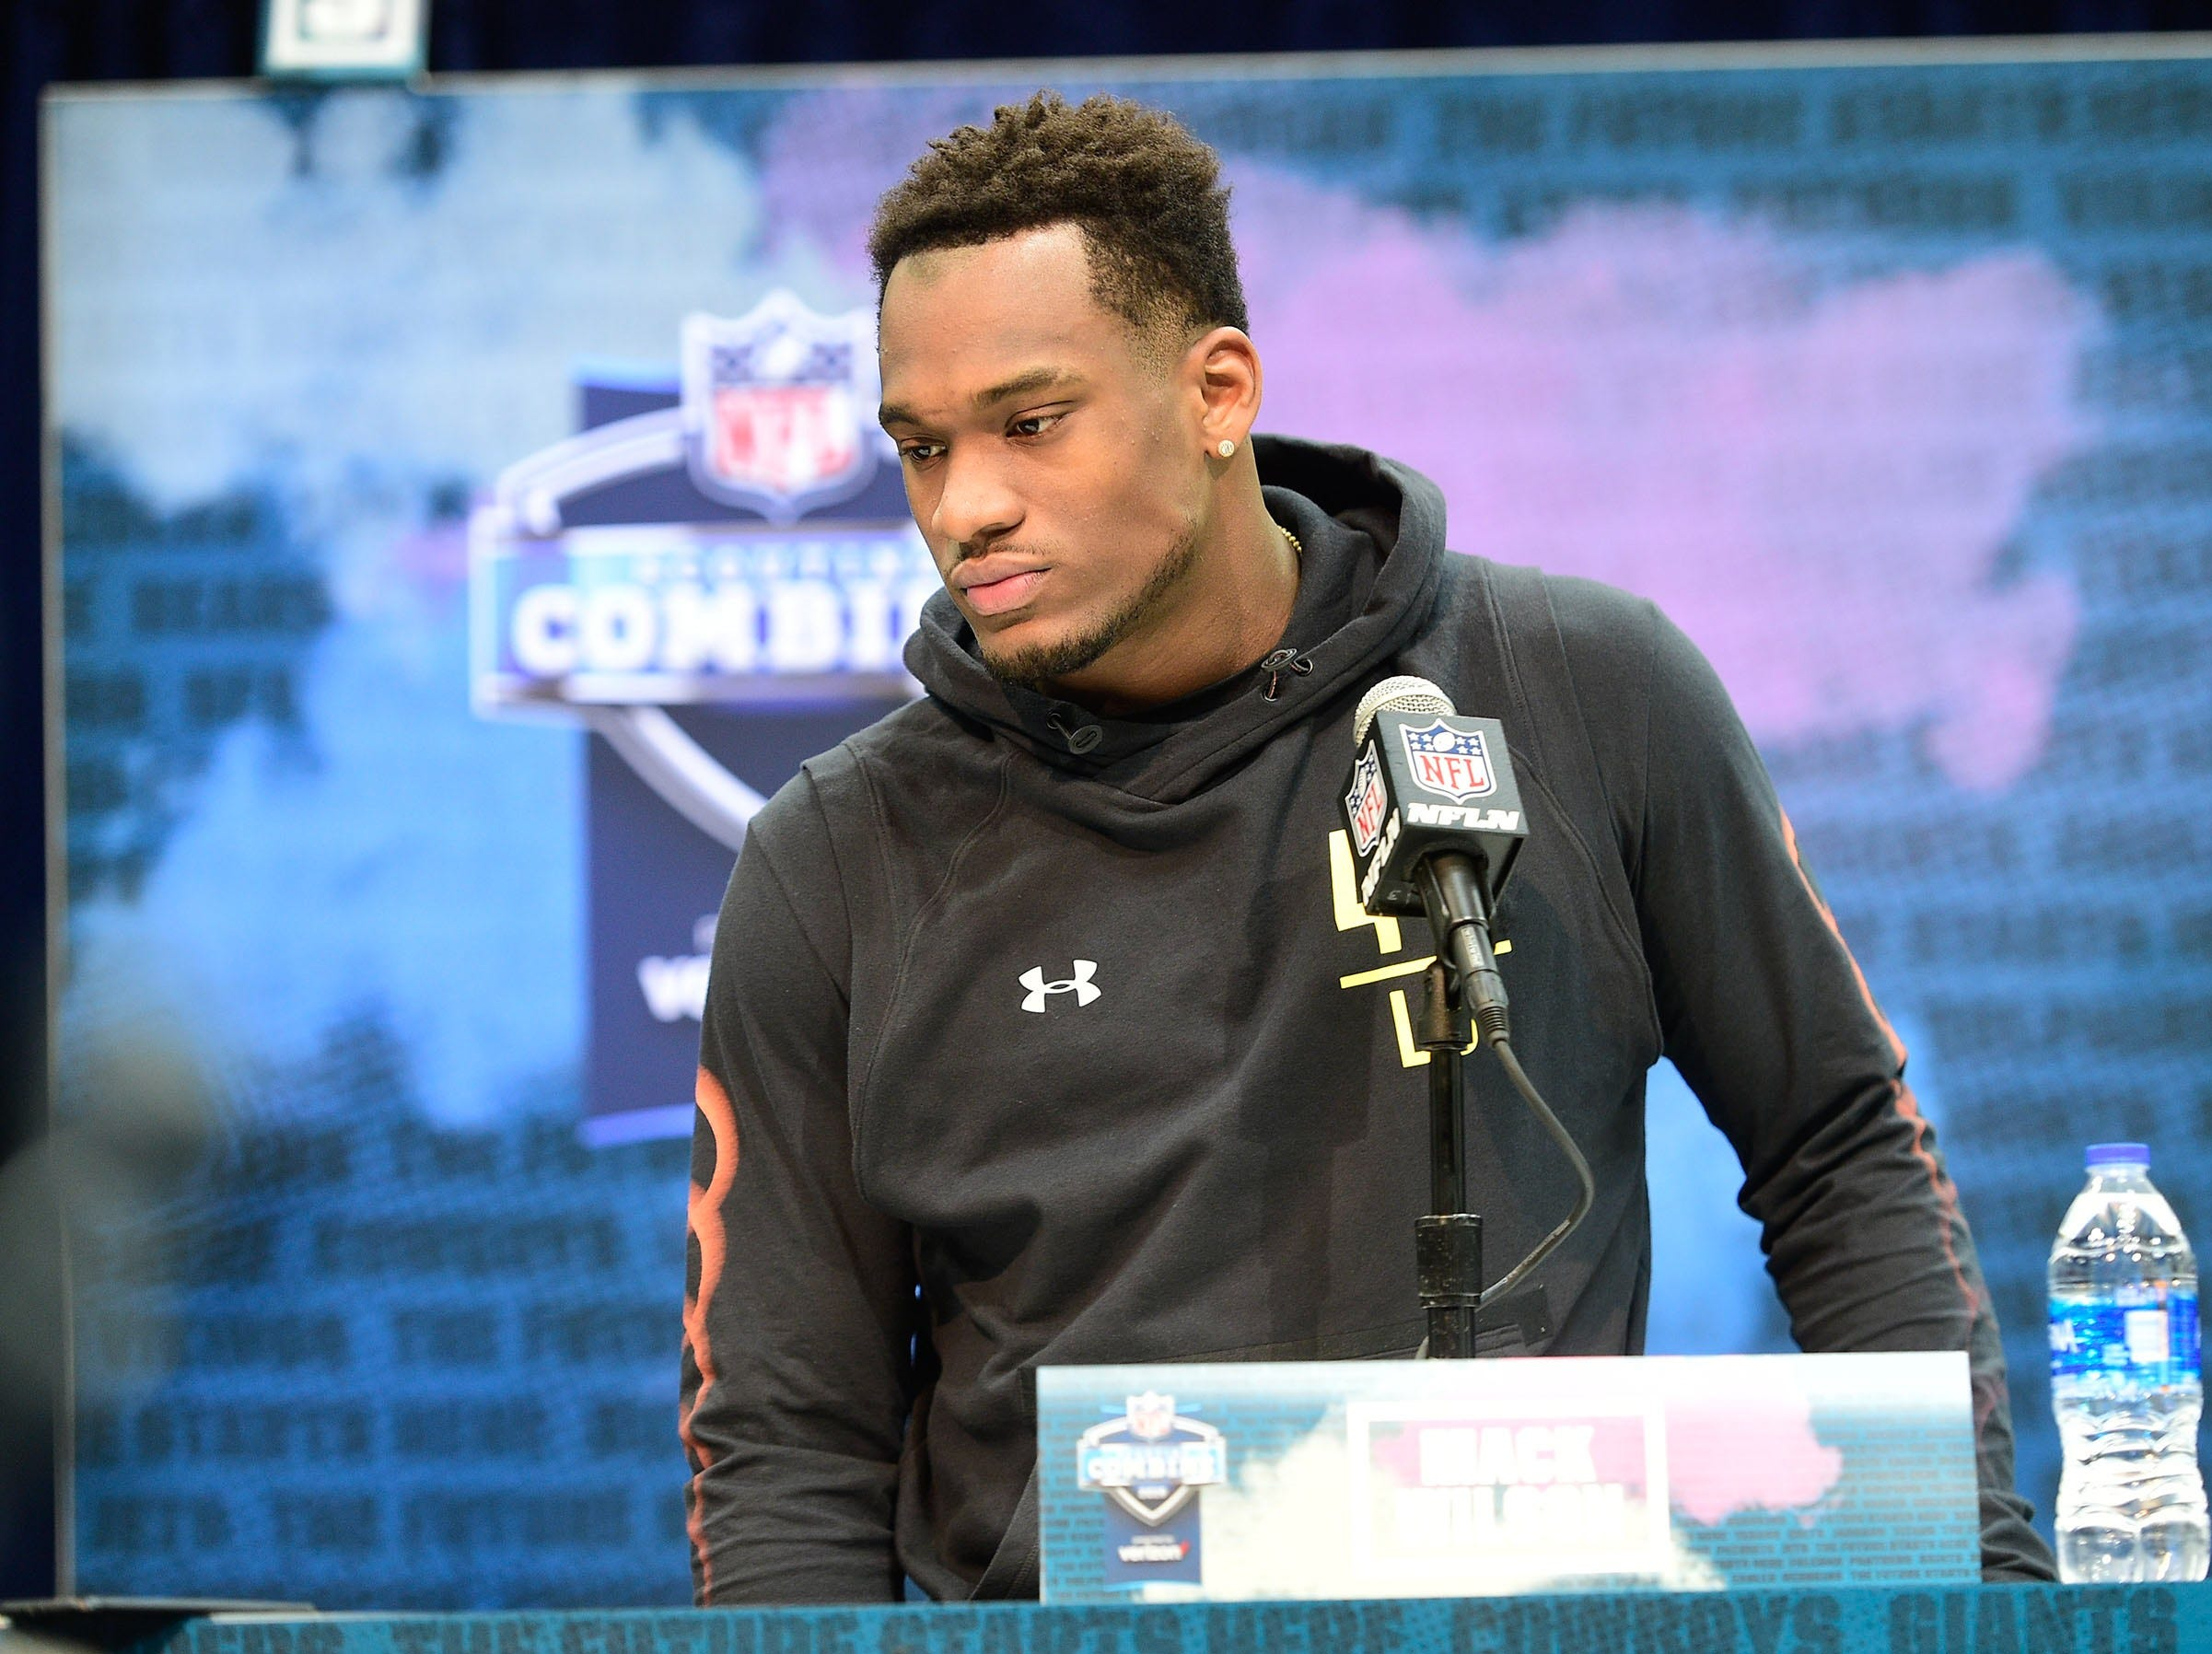 Mar 2, 2019; Indianapolis, IN, USA;Alabama linebacker Mack Wilson (LB42)  talks to the media during the 2019 NFL Combine at Indianapolis Convention Center. Mandatory Credit: Thomas J. Russo-USA TODAY Sports